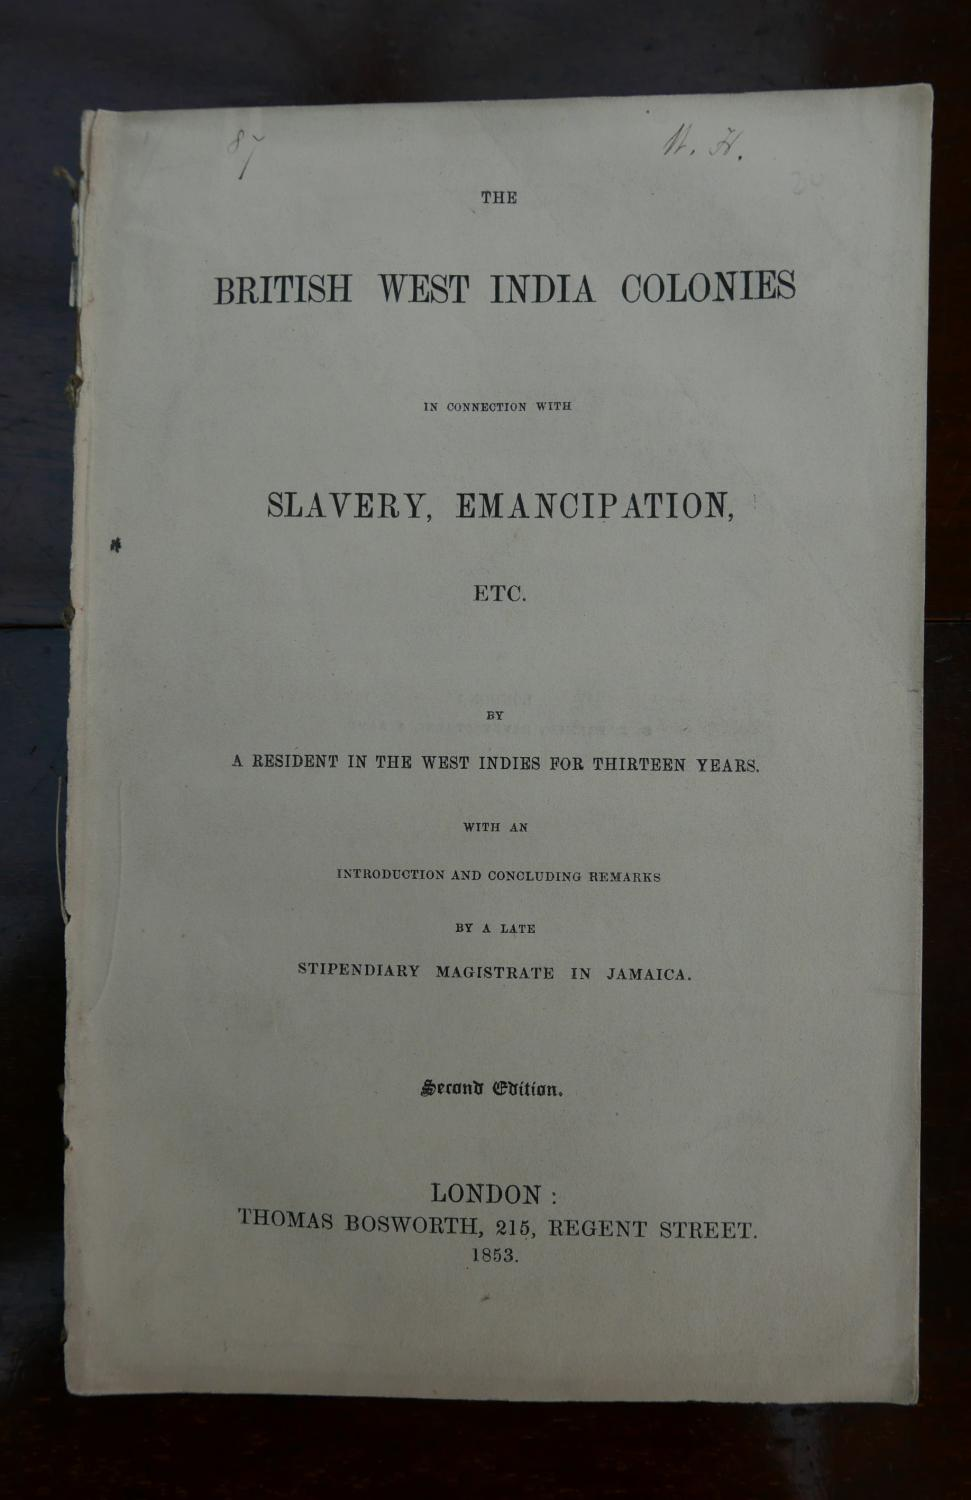 viaLibri ~ The British West India Colonies in connection